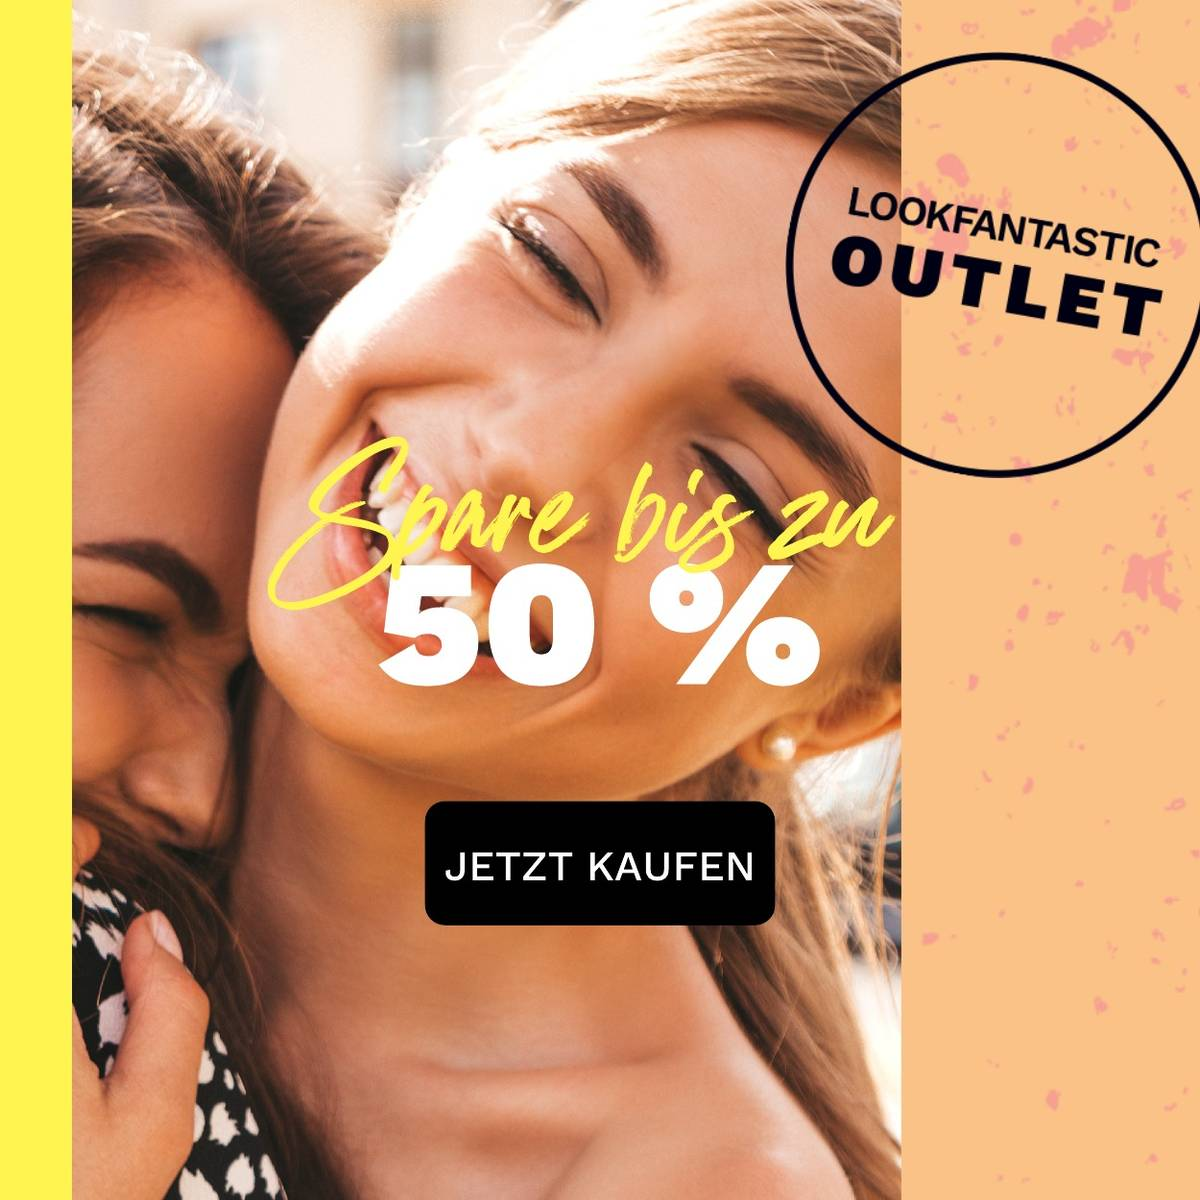 Outlet bei lookfantastic